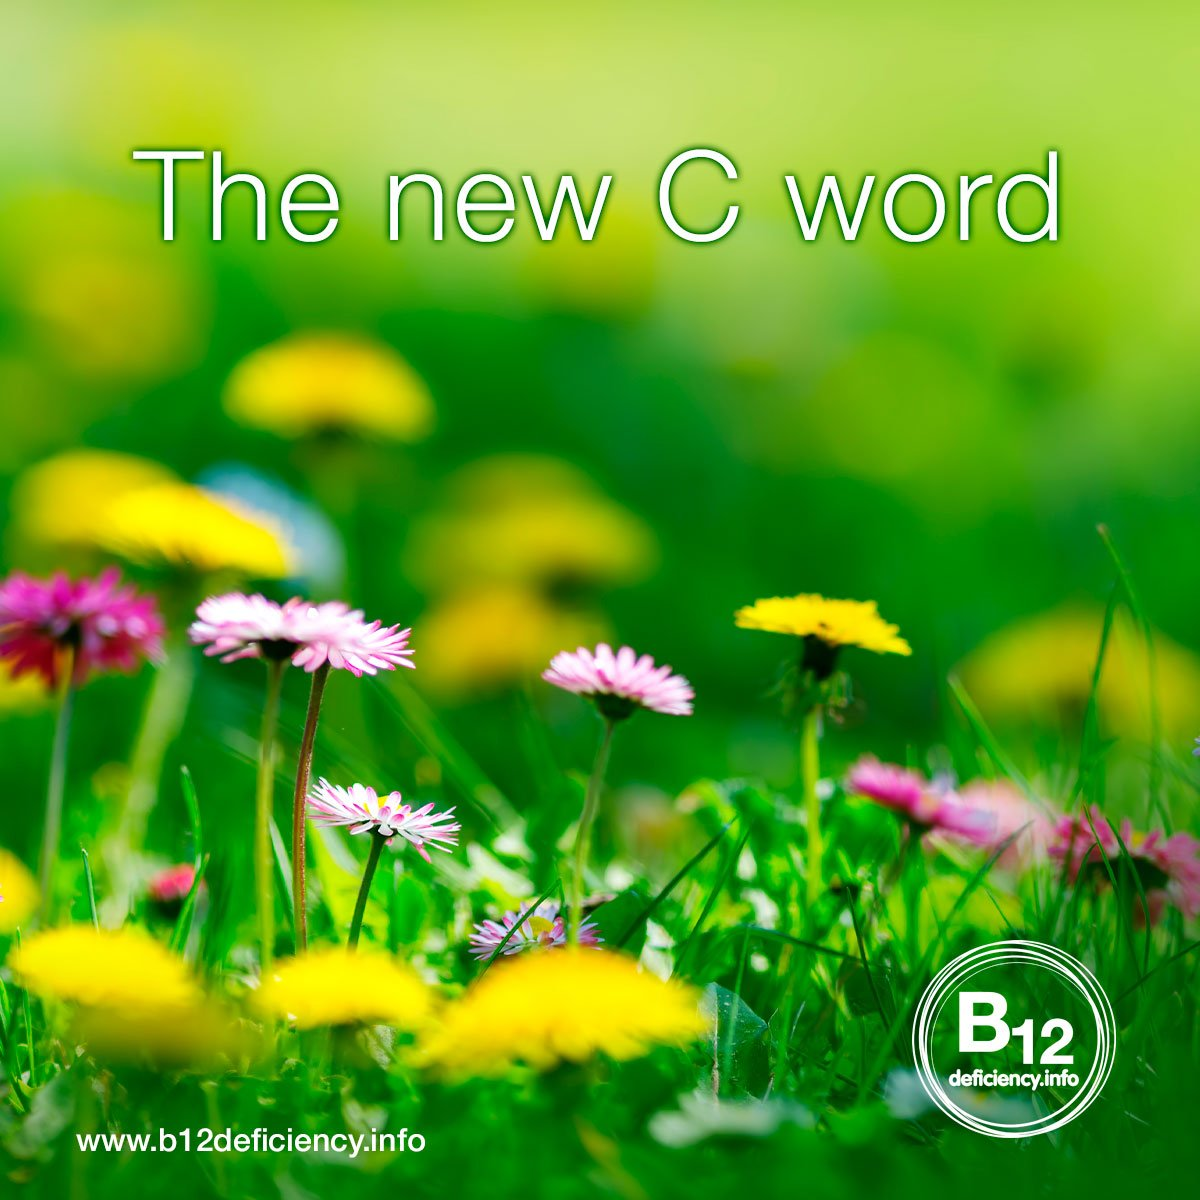 The new C word